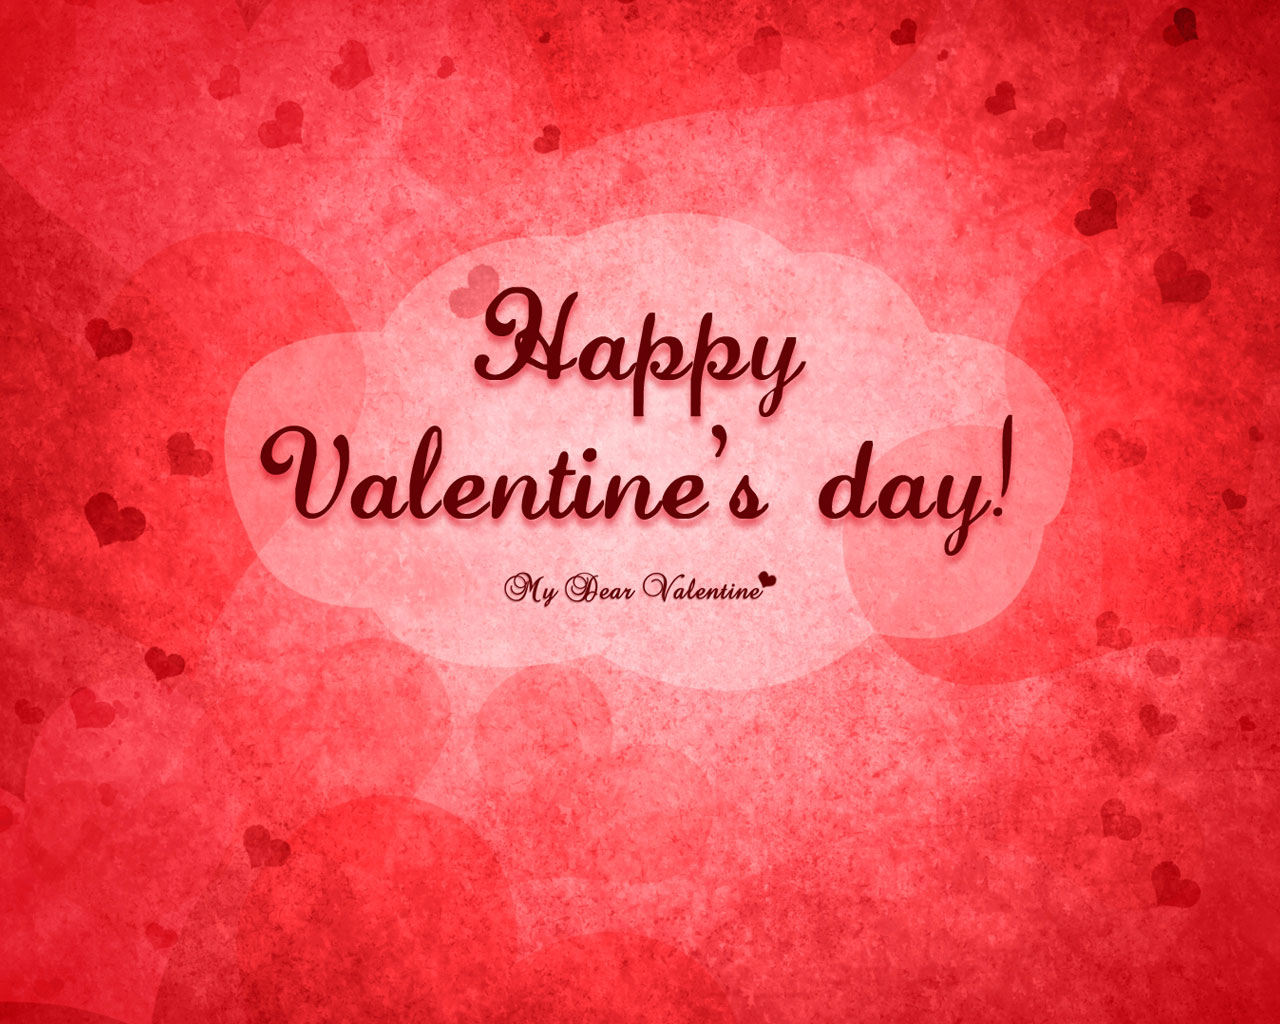 Valentines Day Every Day Quotes. QuotesGram